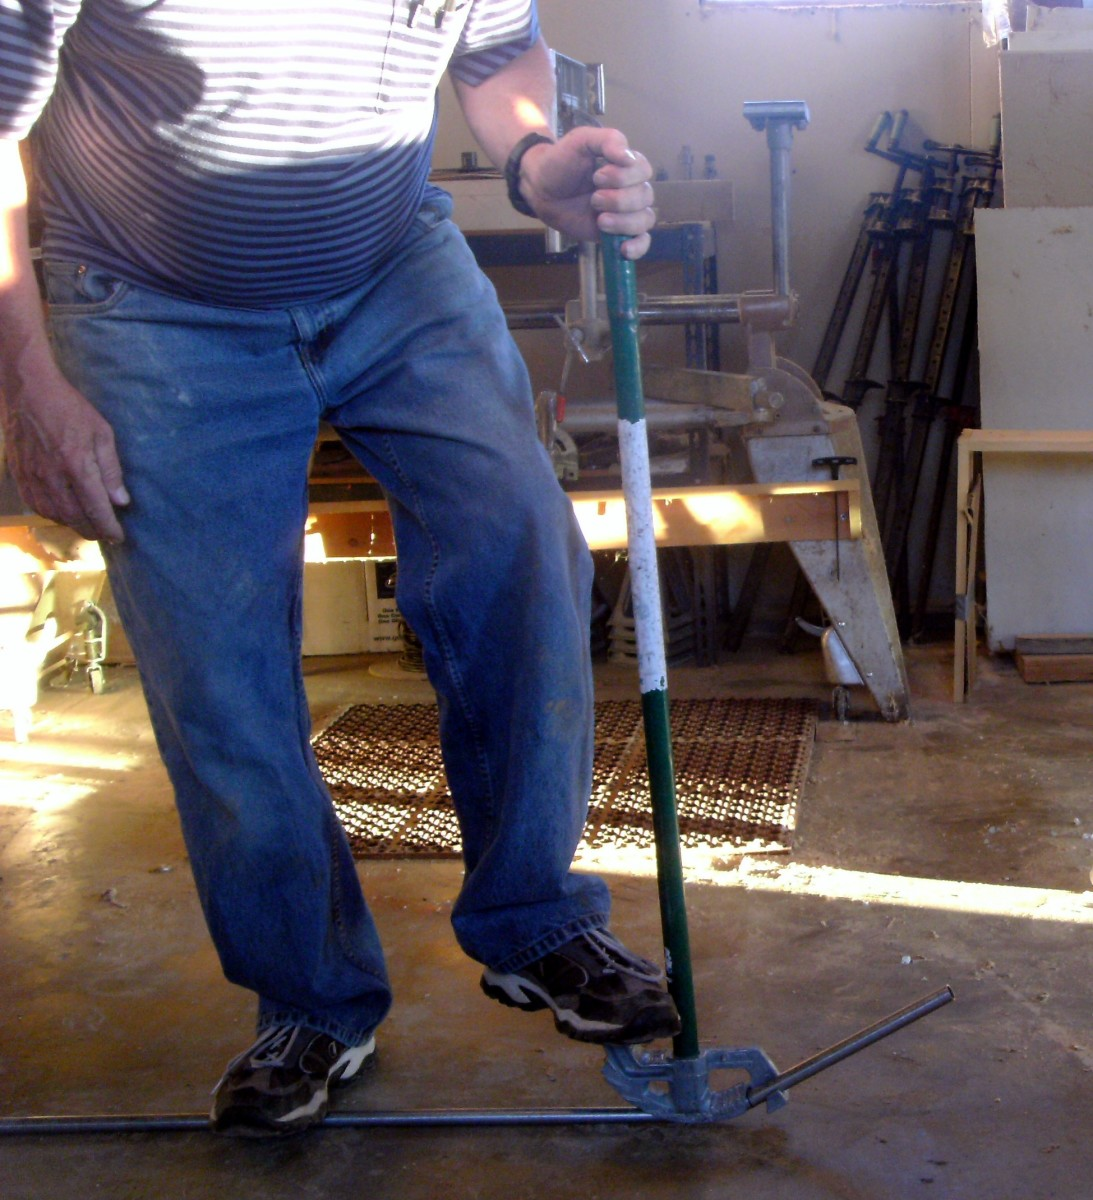 Apply foot pressure and at the same time pull the bender handle to bend electrical pipe.